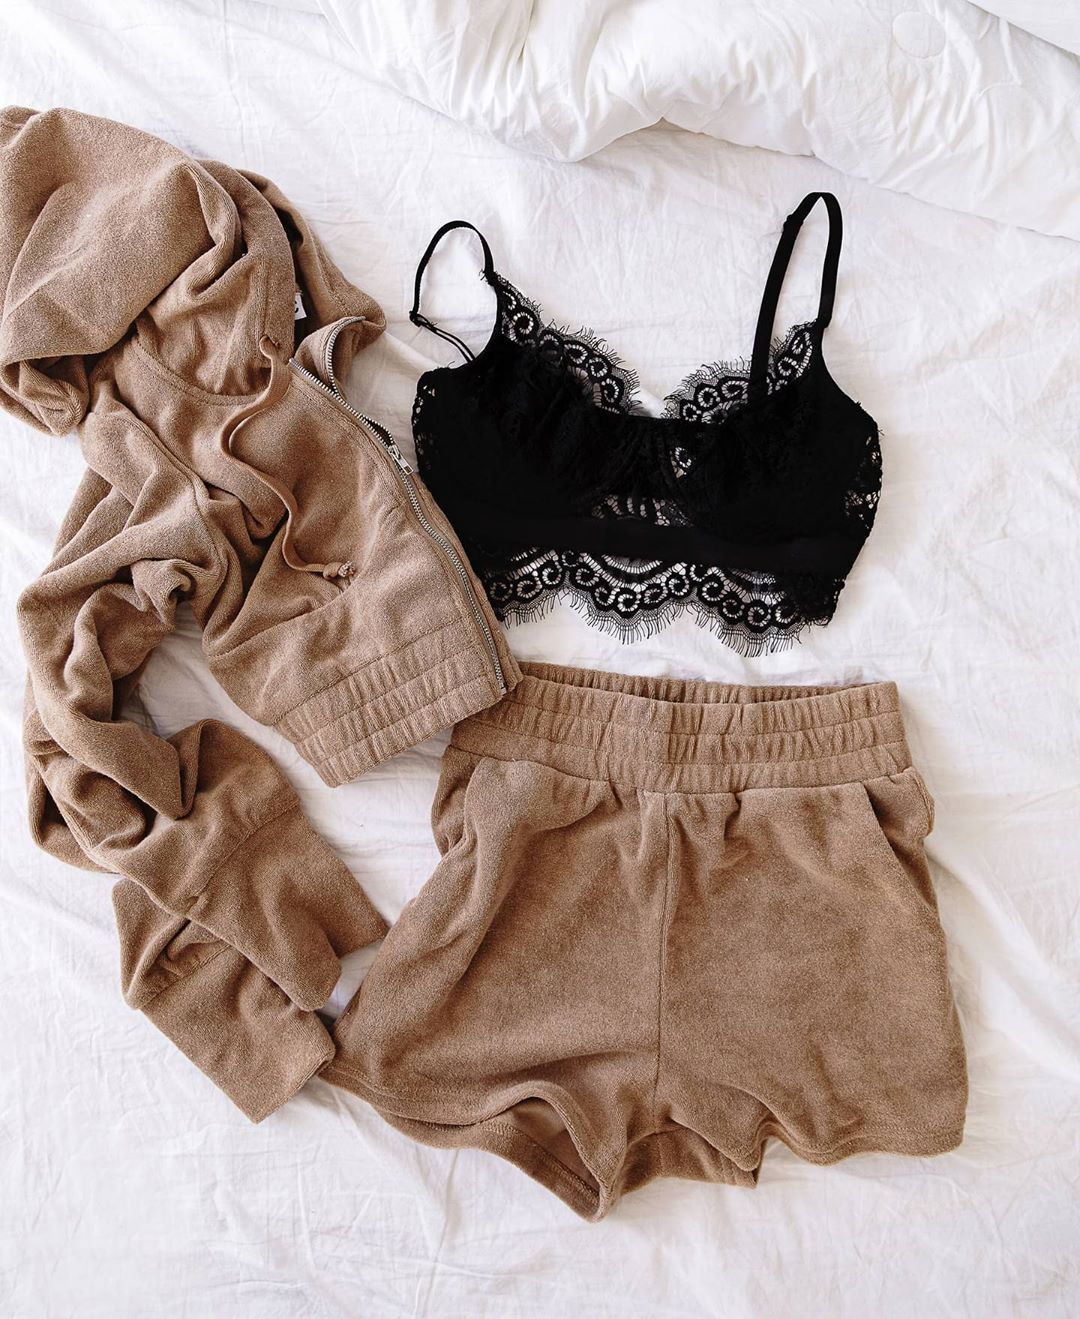 @shoppriceless